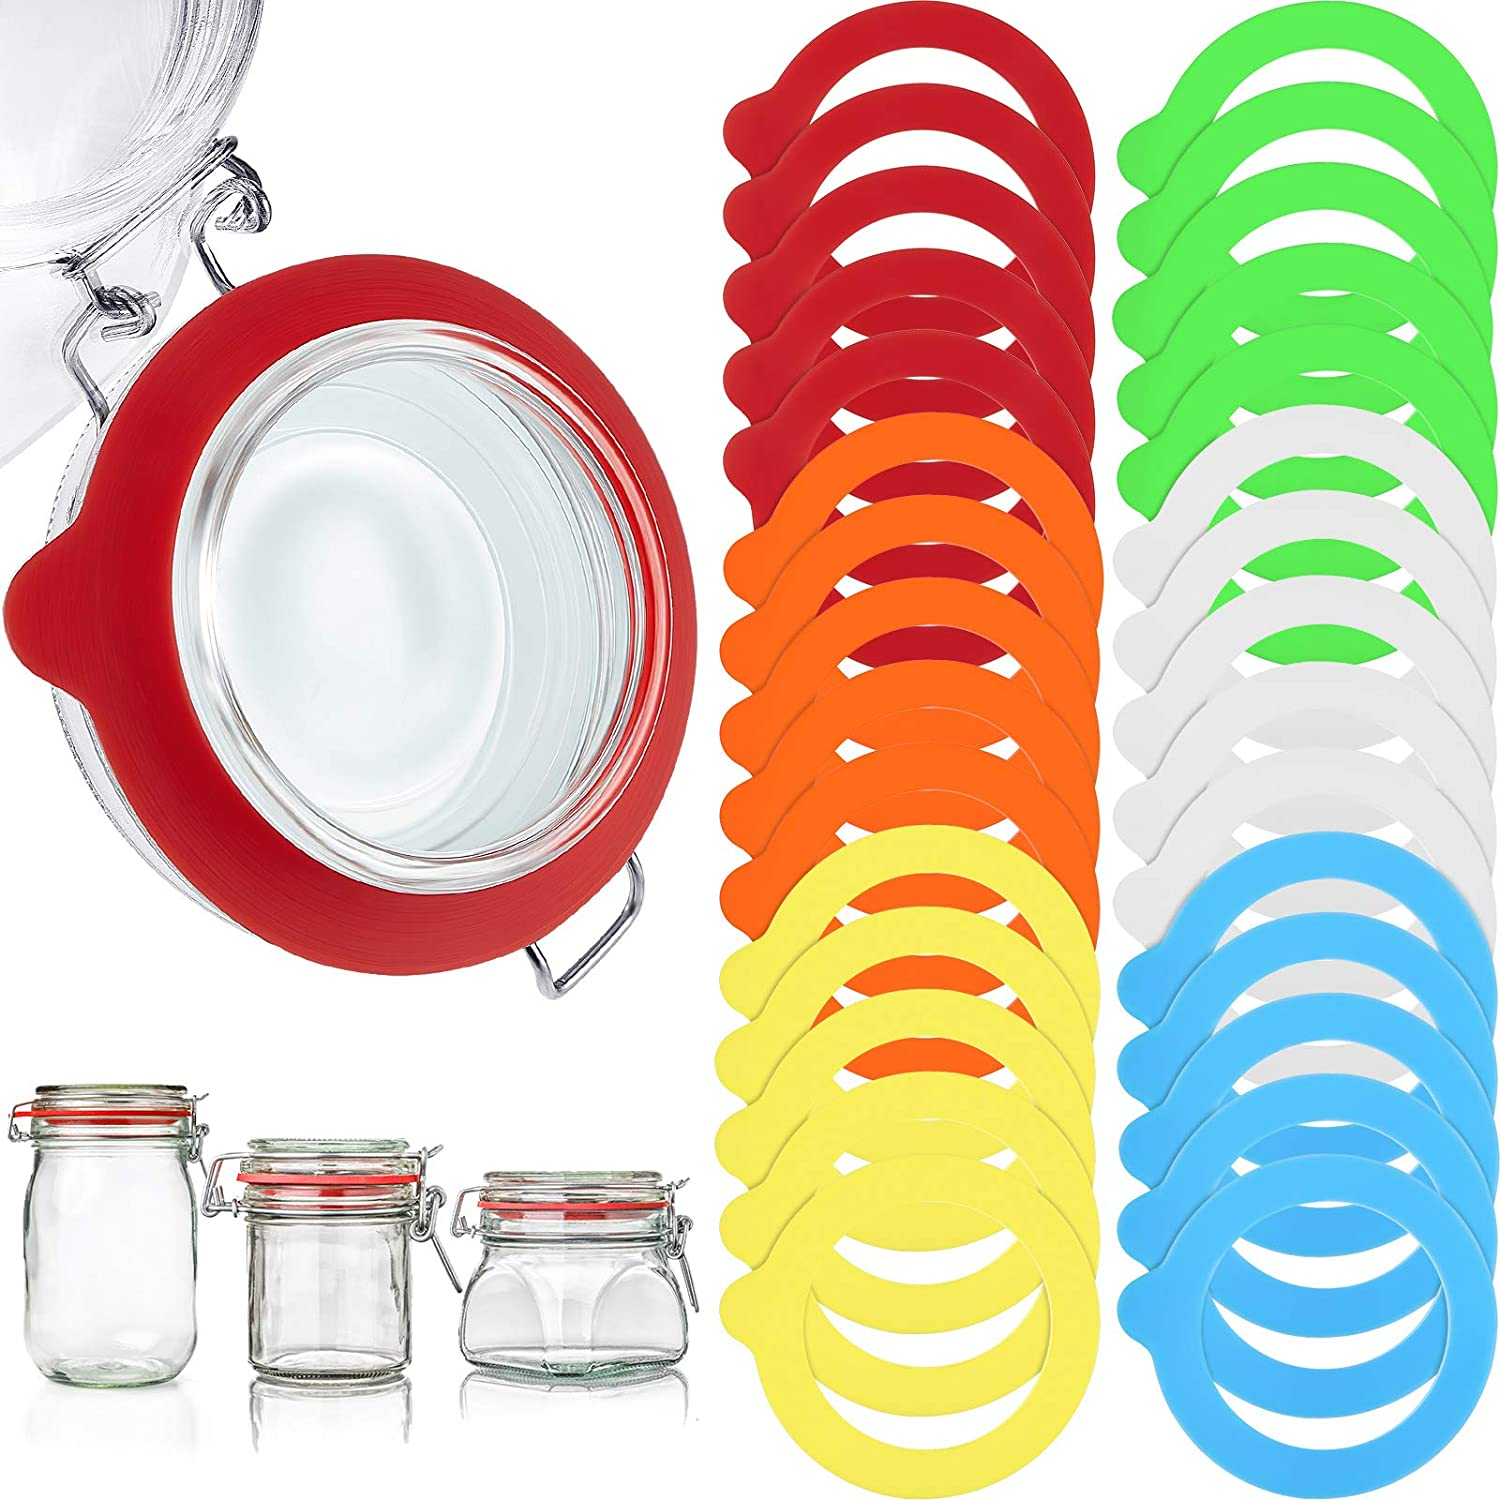 10Pcs Silicone Jar Gaskets Seals Rings Replacement For Regular Mouth Canning Jar